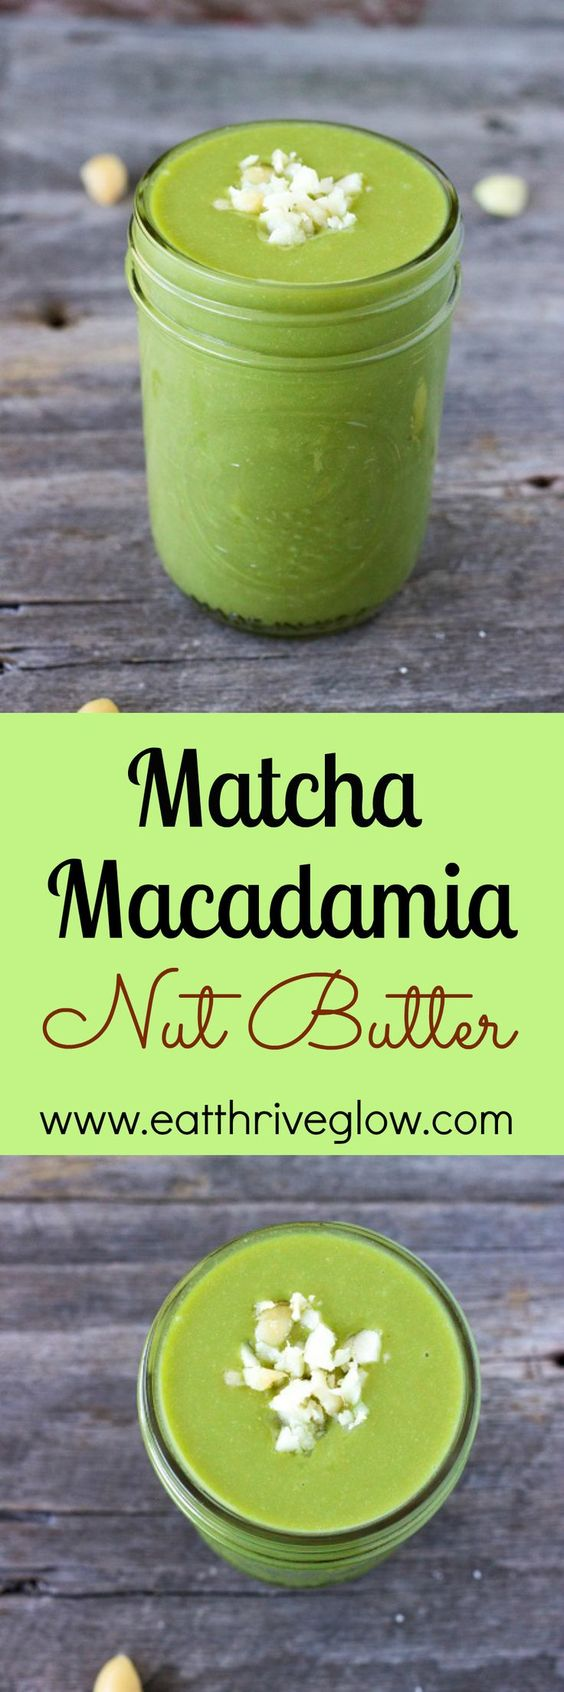 Matcha Macadamia Nut Butter recipe. Organic matcha is a Japanese green tea that is loaded with antioxidants. Delicious superfood!